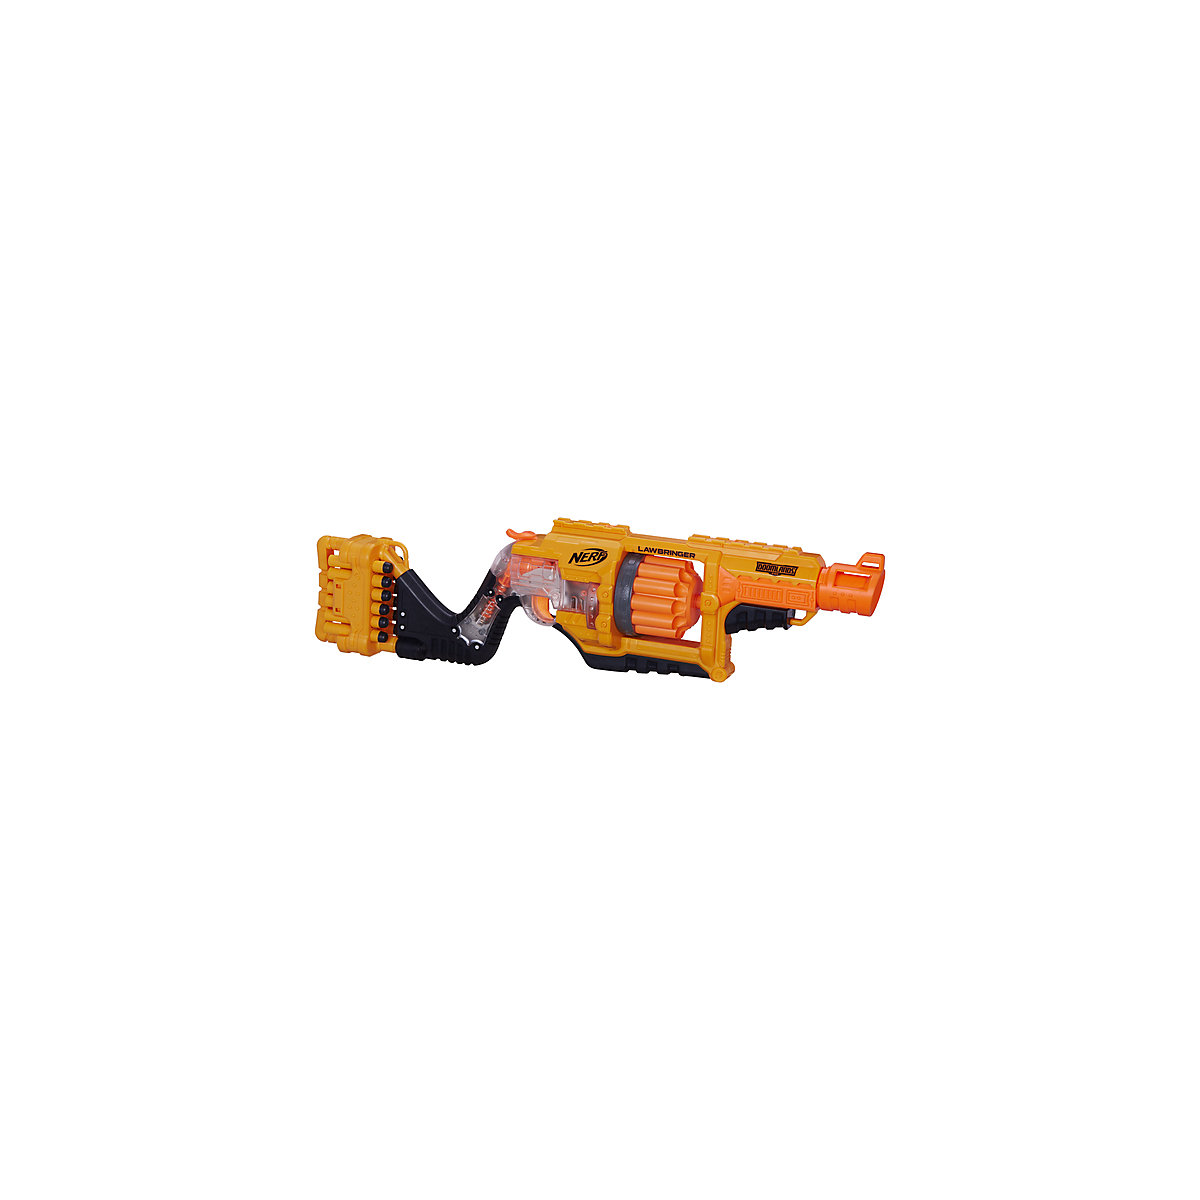 Toy Guns NERF 10023651 Children Kids Toy Gun Weapon Blasters Boys Shooting games Outdoor play children play house toy